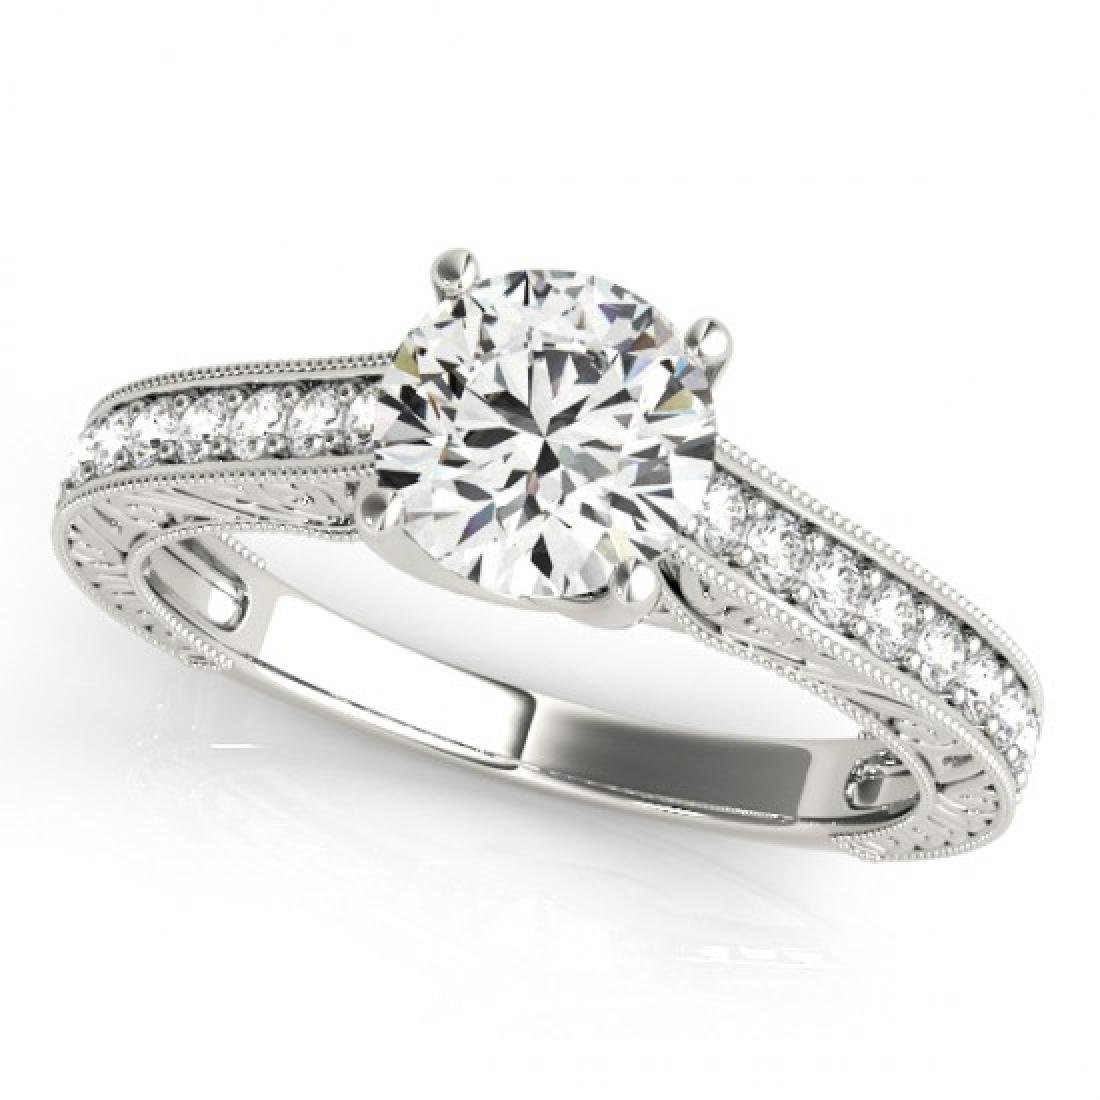 1.32 CTW Certified VS/SI Diamond Solitaire Ring 14K